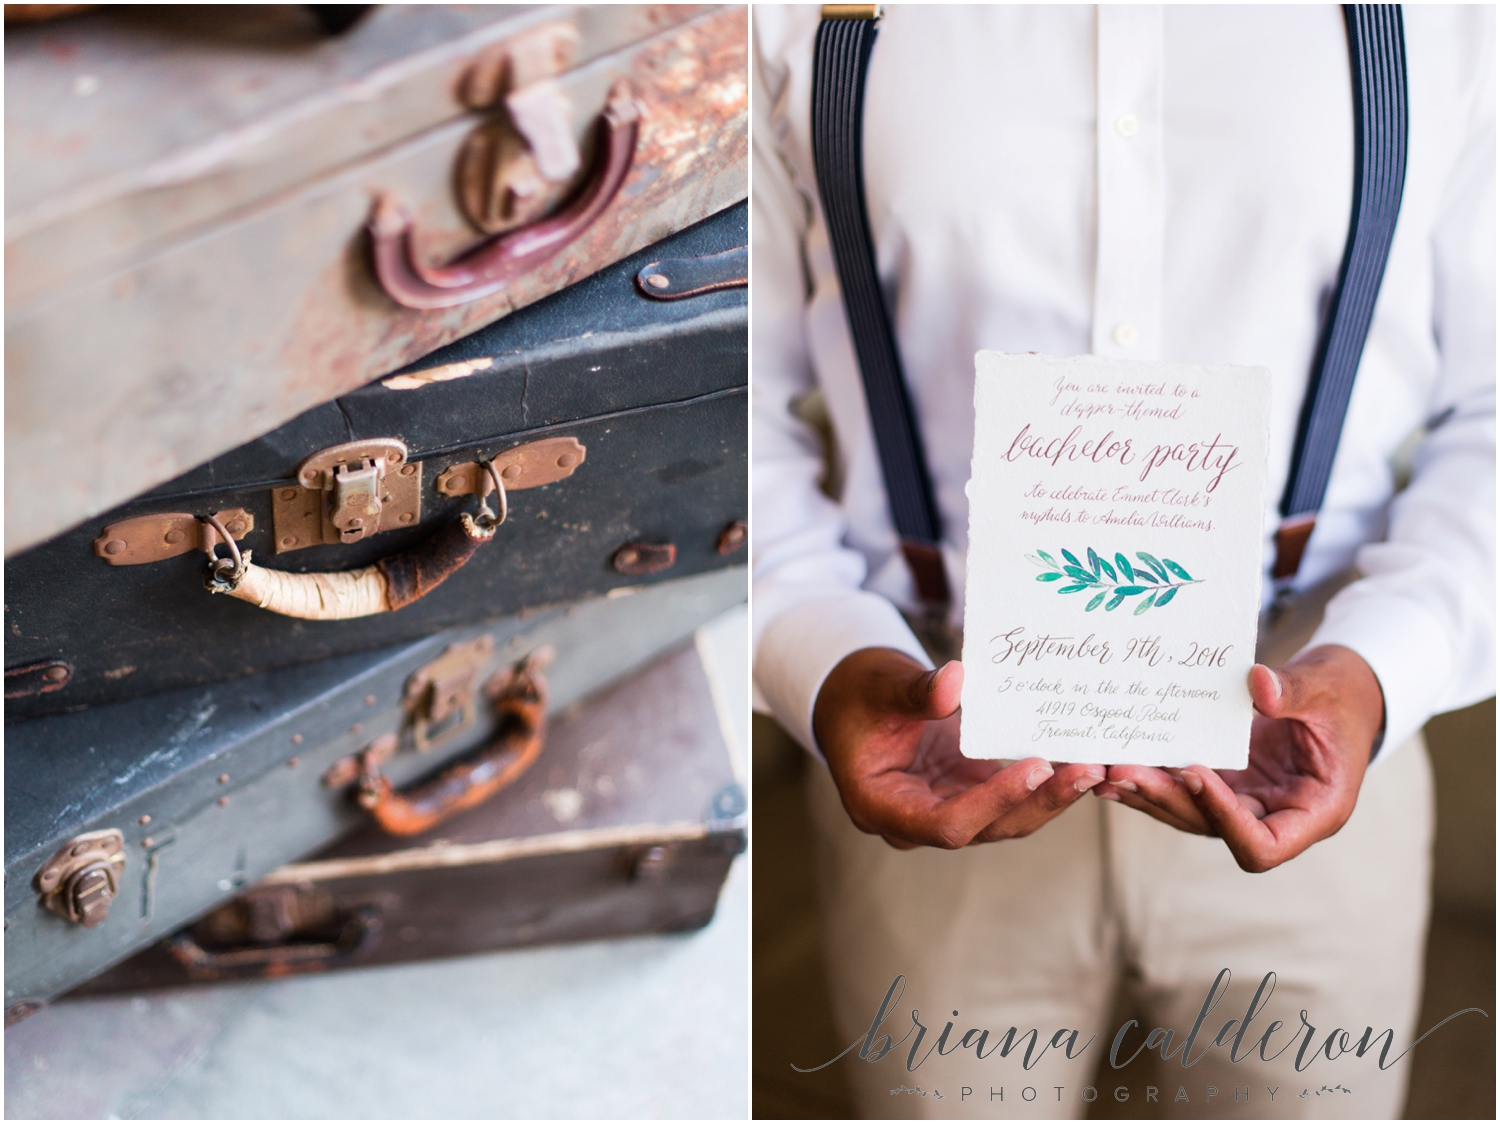 Seventh Heaven Vintage Rental styled shoot. Photos by Briana Calderon Photography_0733.jpg